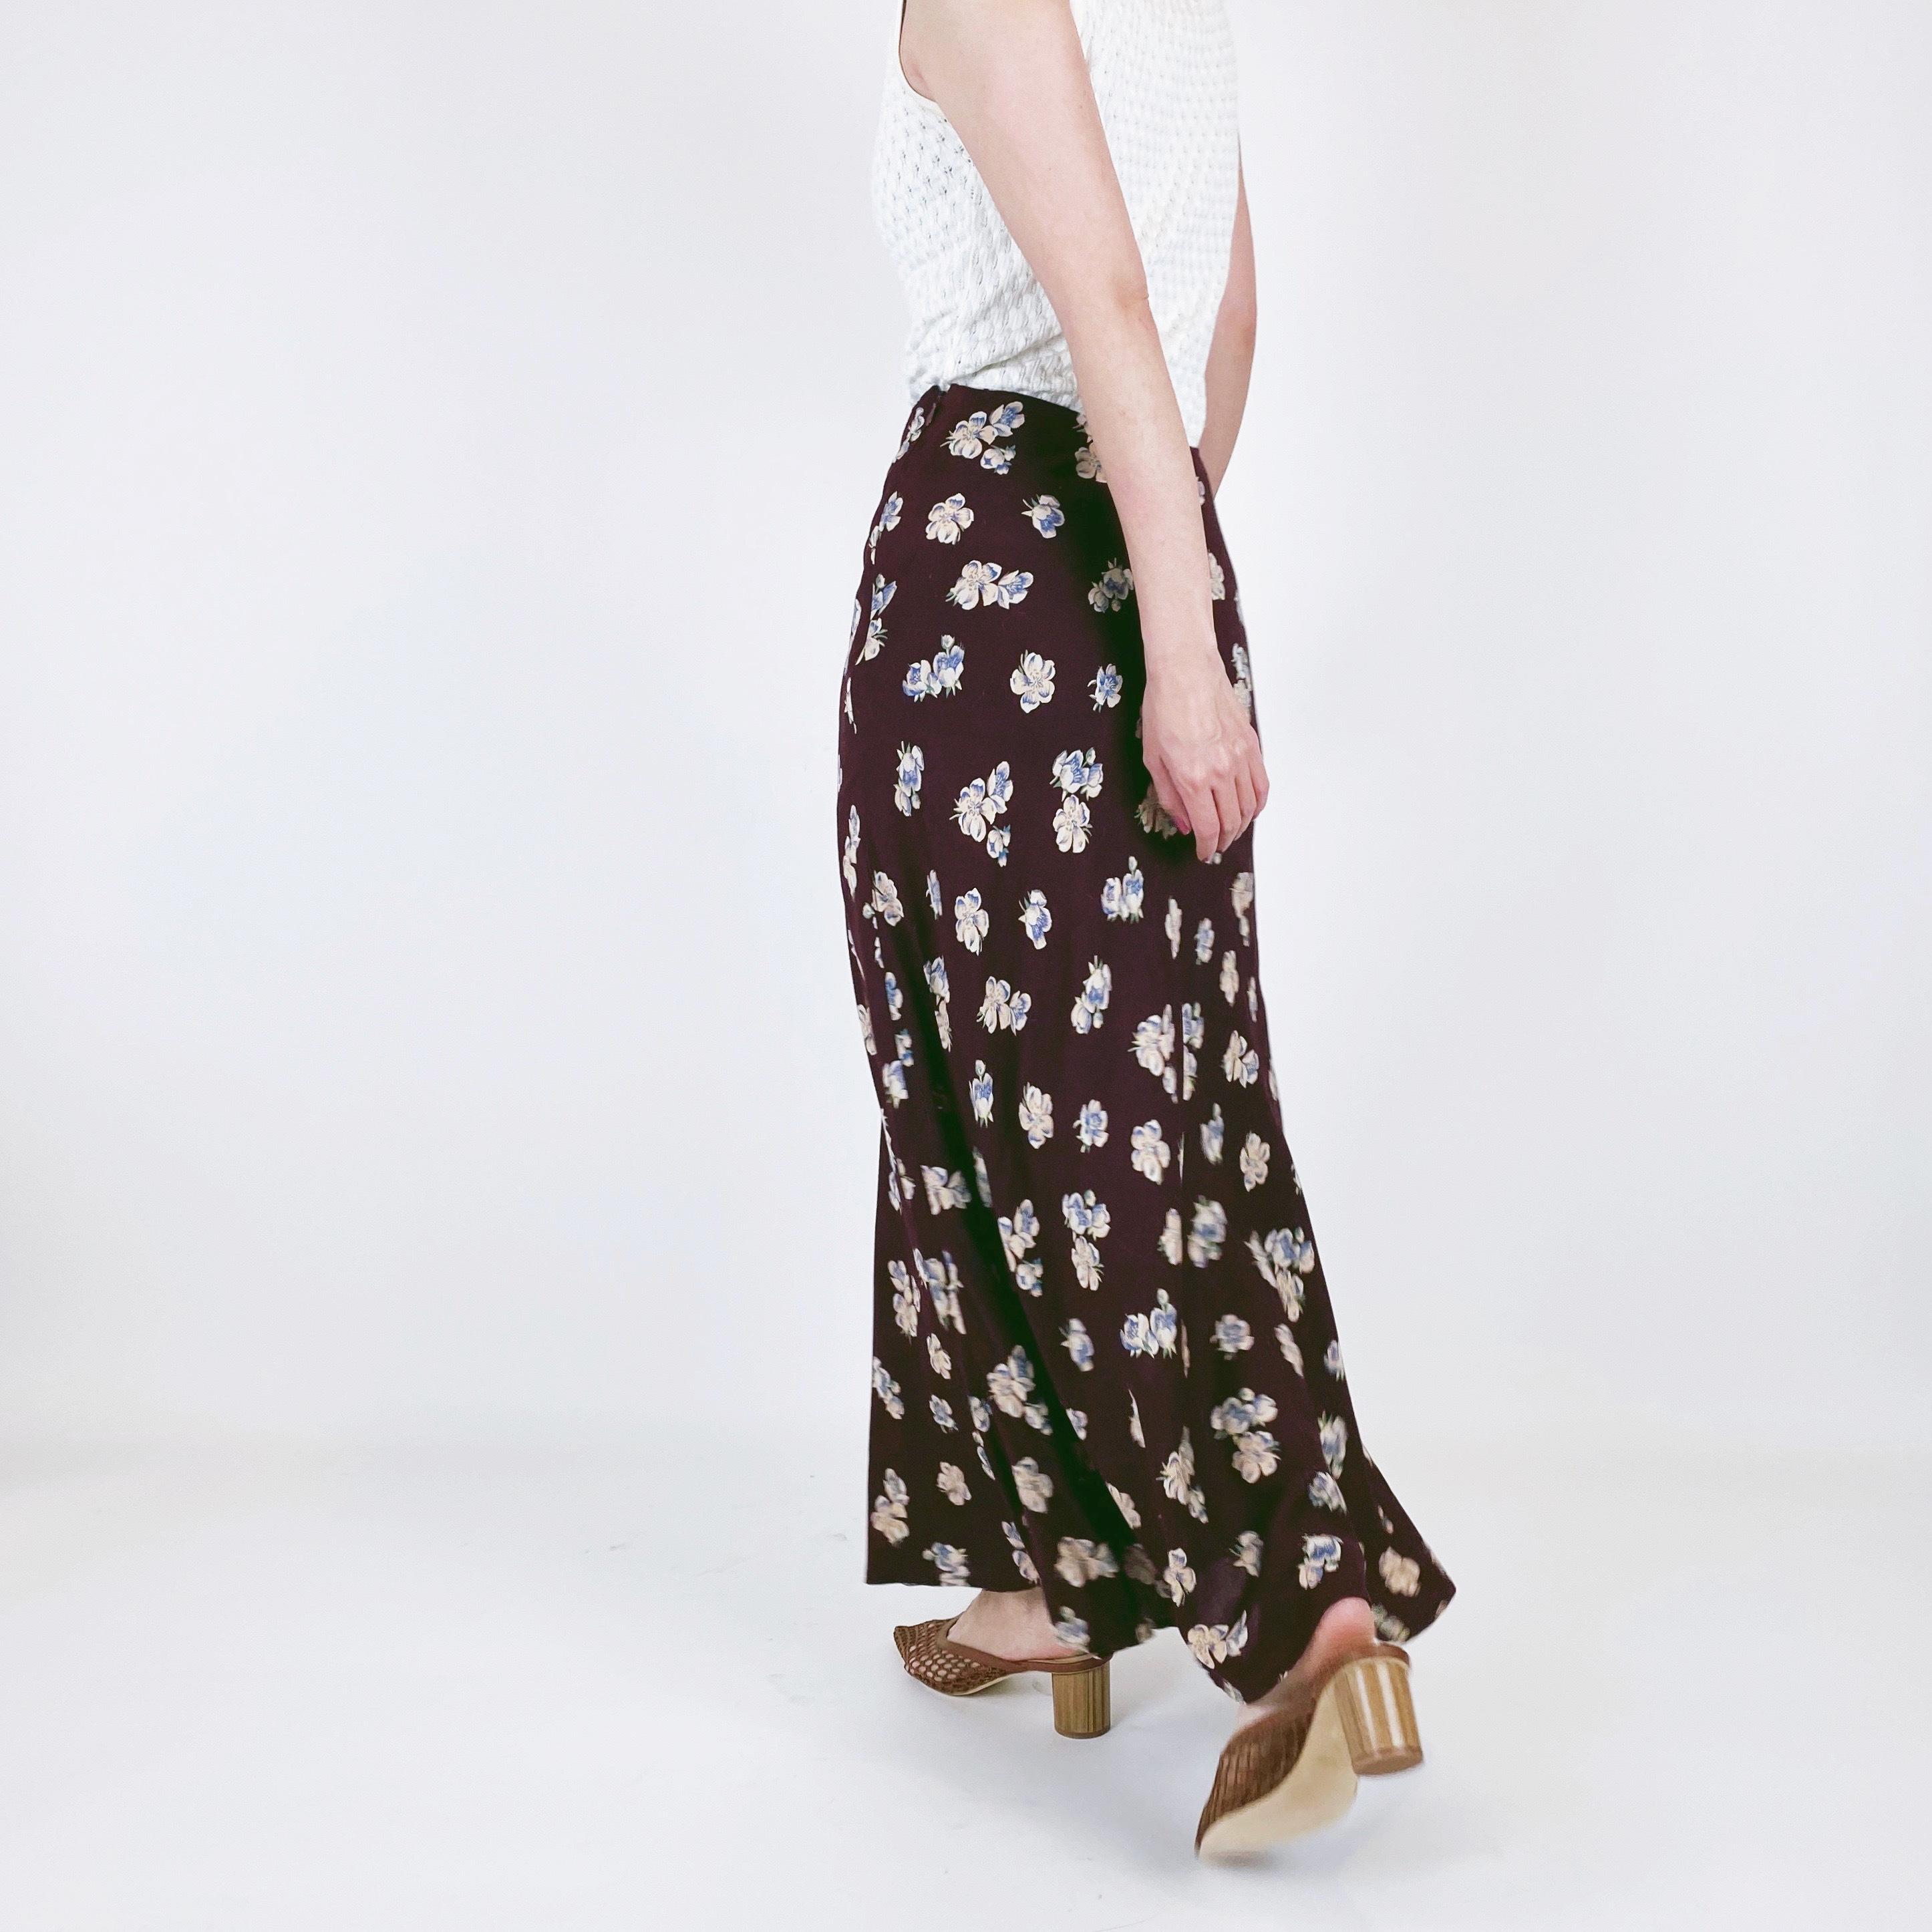 ◼︎90s floral print mermaid line rayon skirt from U.S.A.◼︎